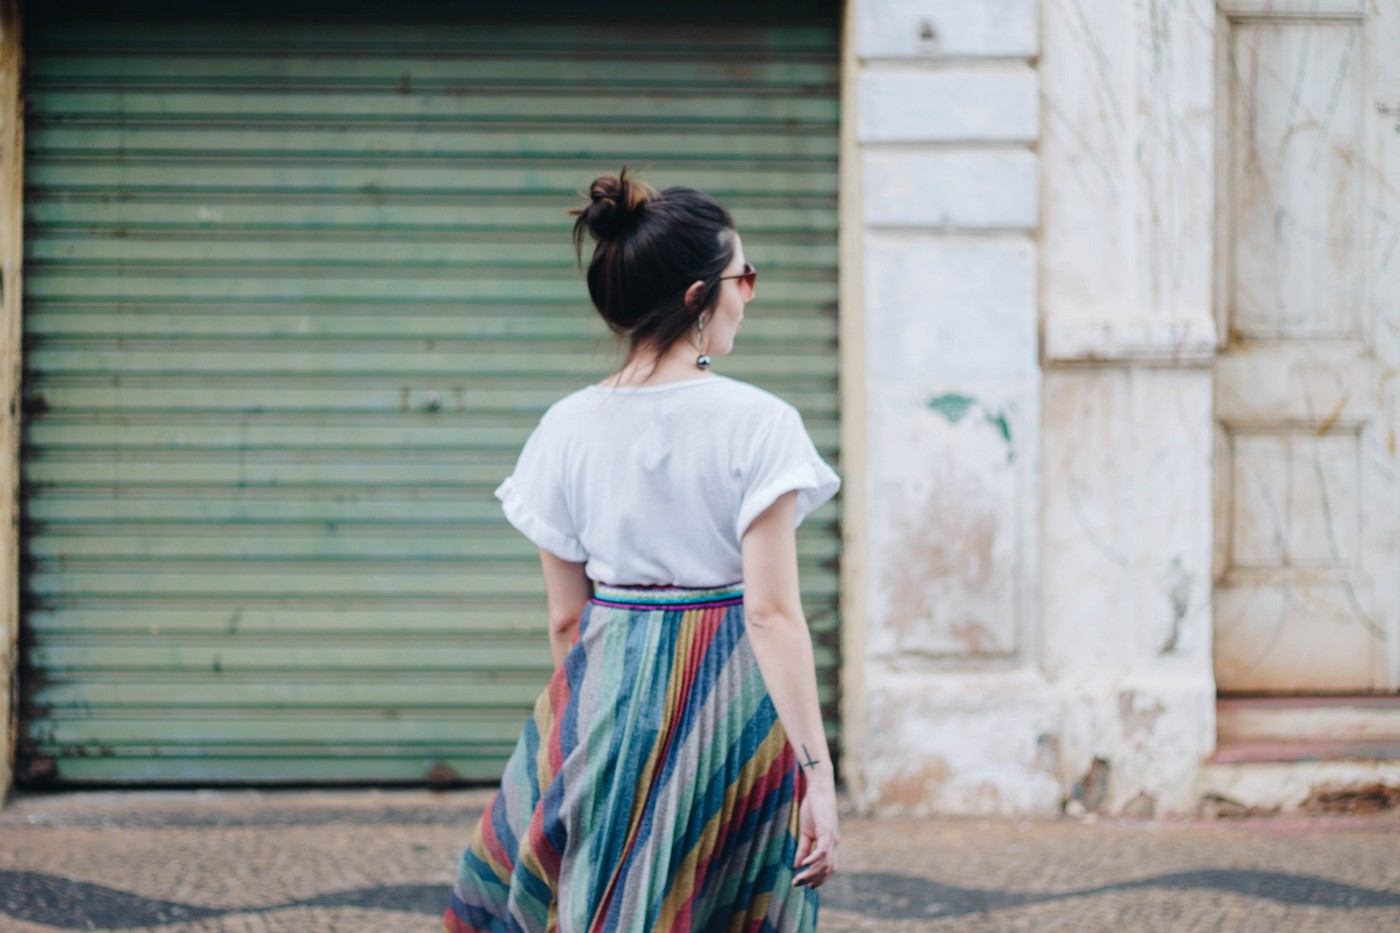 Girl in colourful skirt crossing road after quitting job